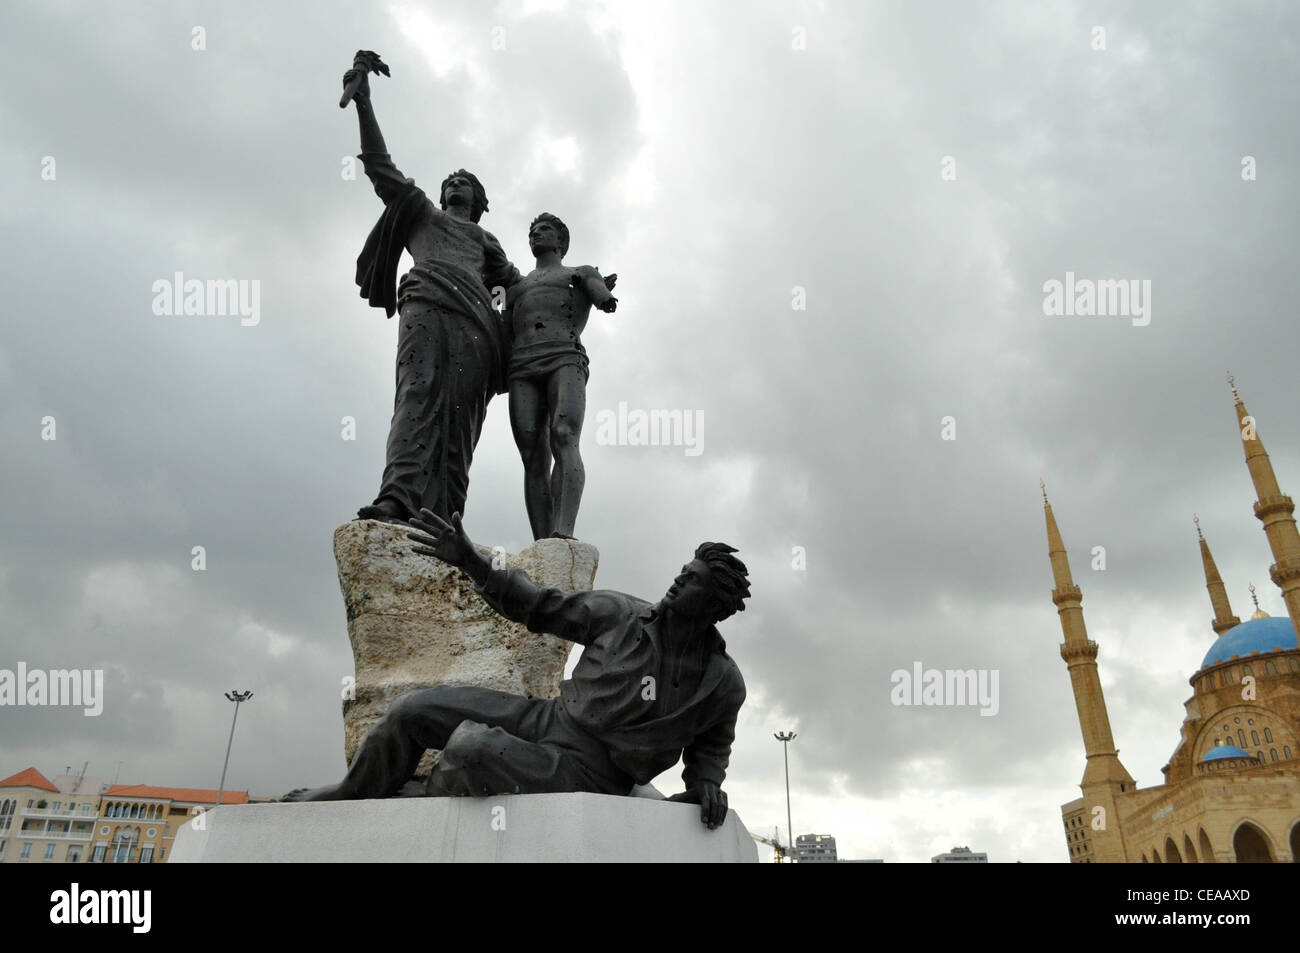 Martyrs' Square, Beirut, bullet holes in the statue, Lebanon - Stock Image